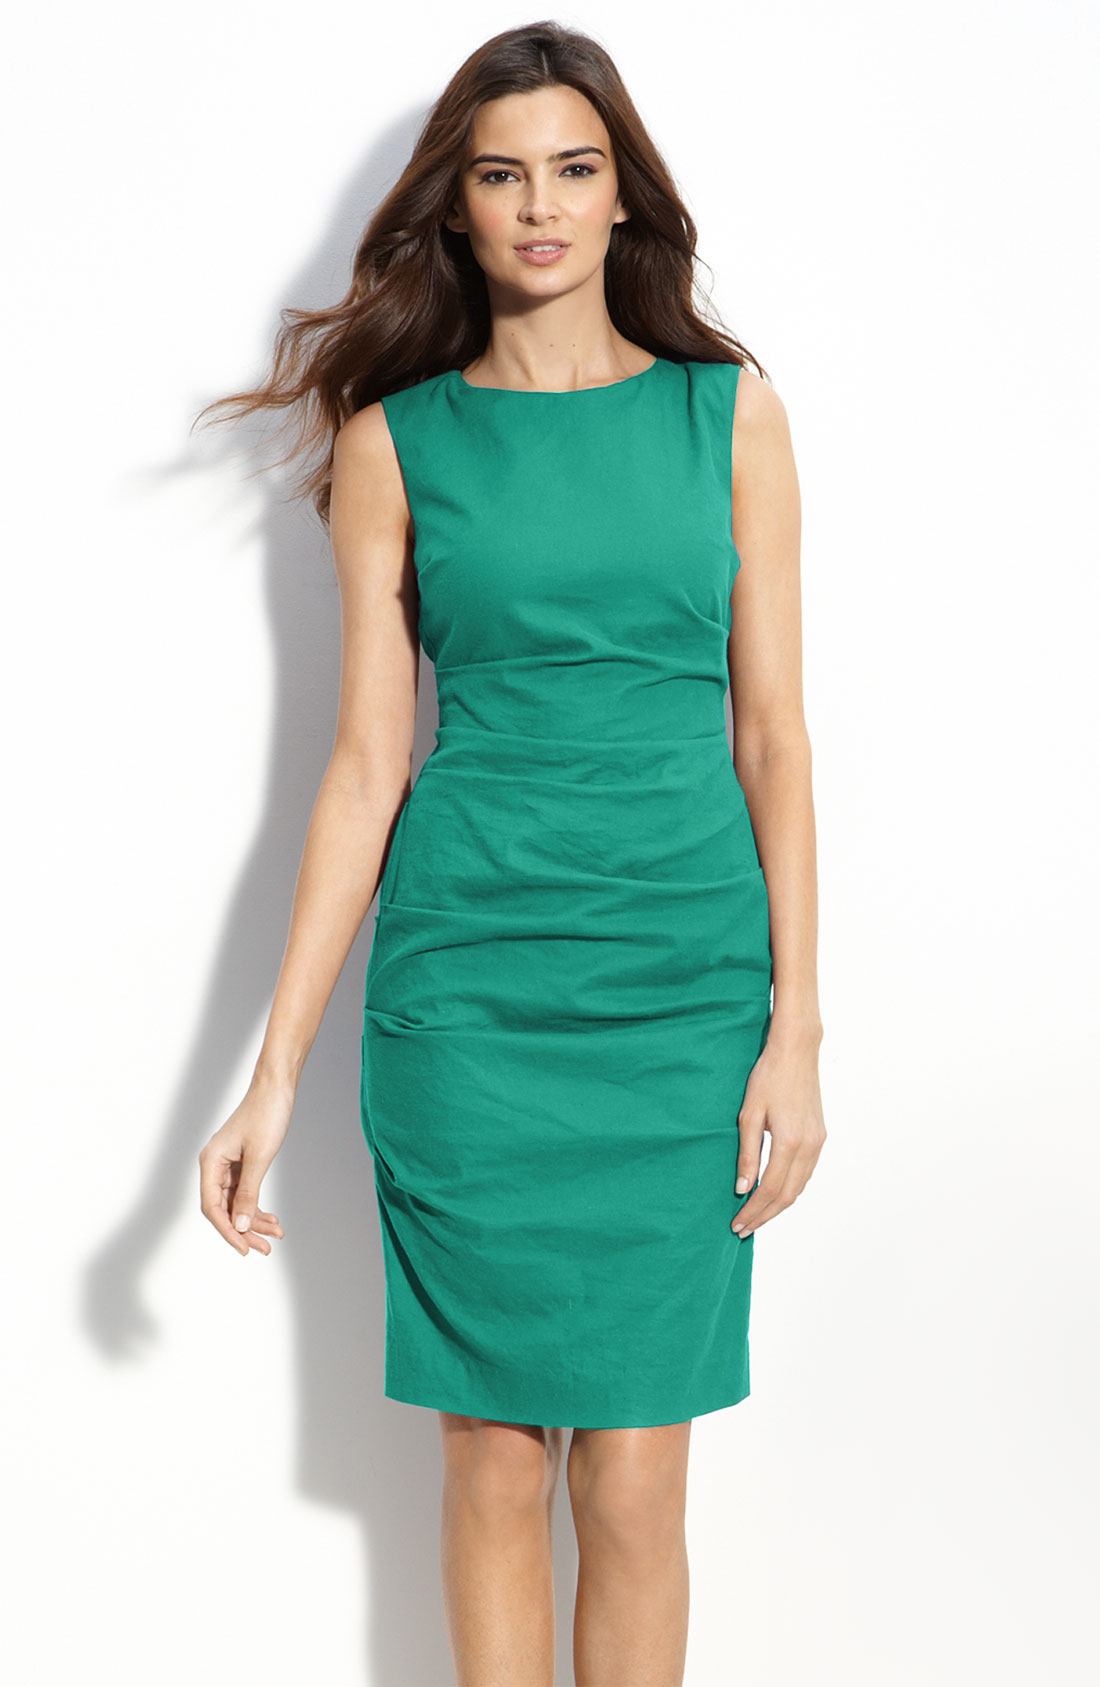 Nicole Miller Stretch Linen Sheath Dress in Green lagoon